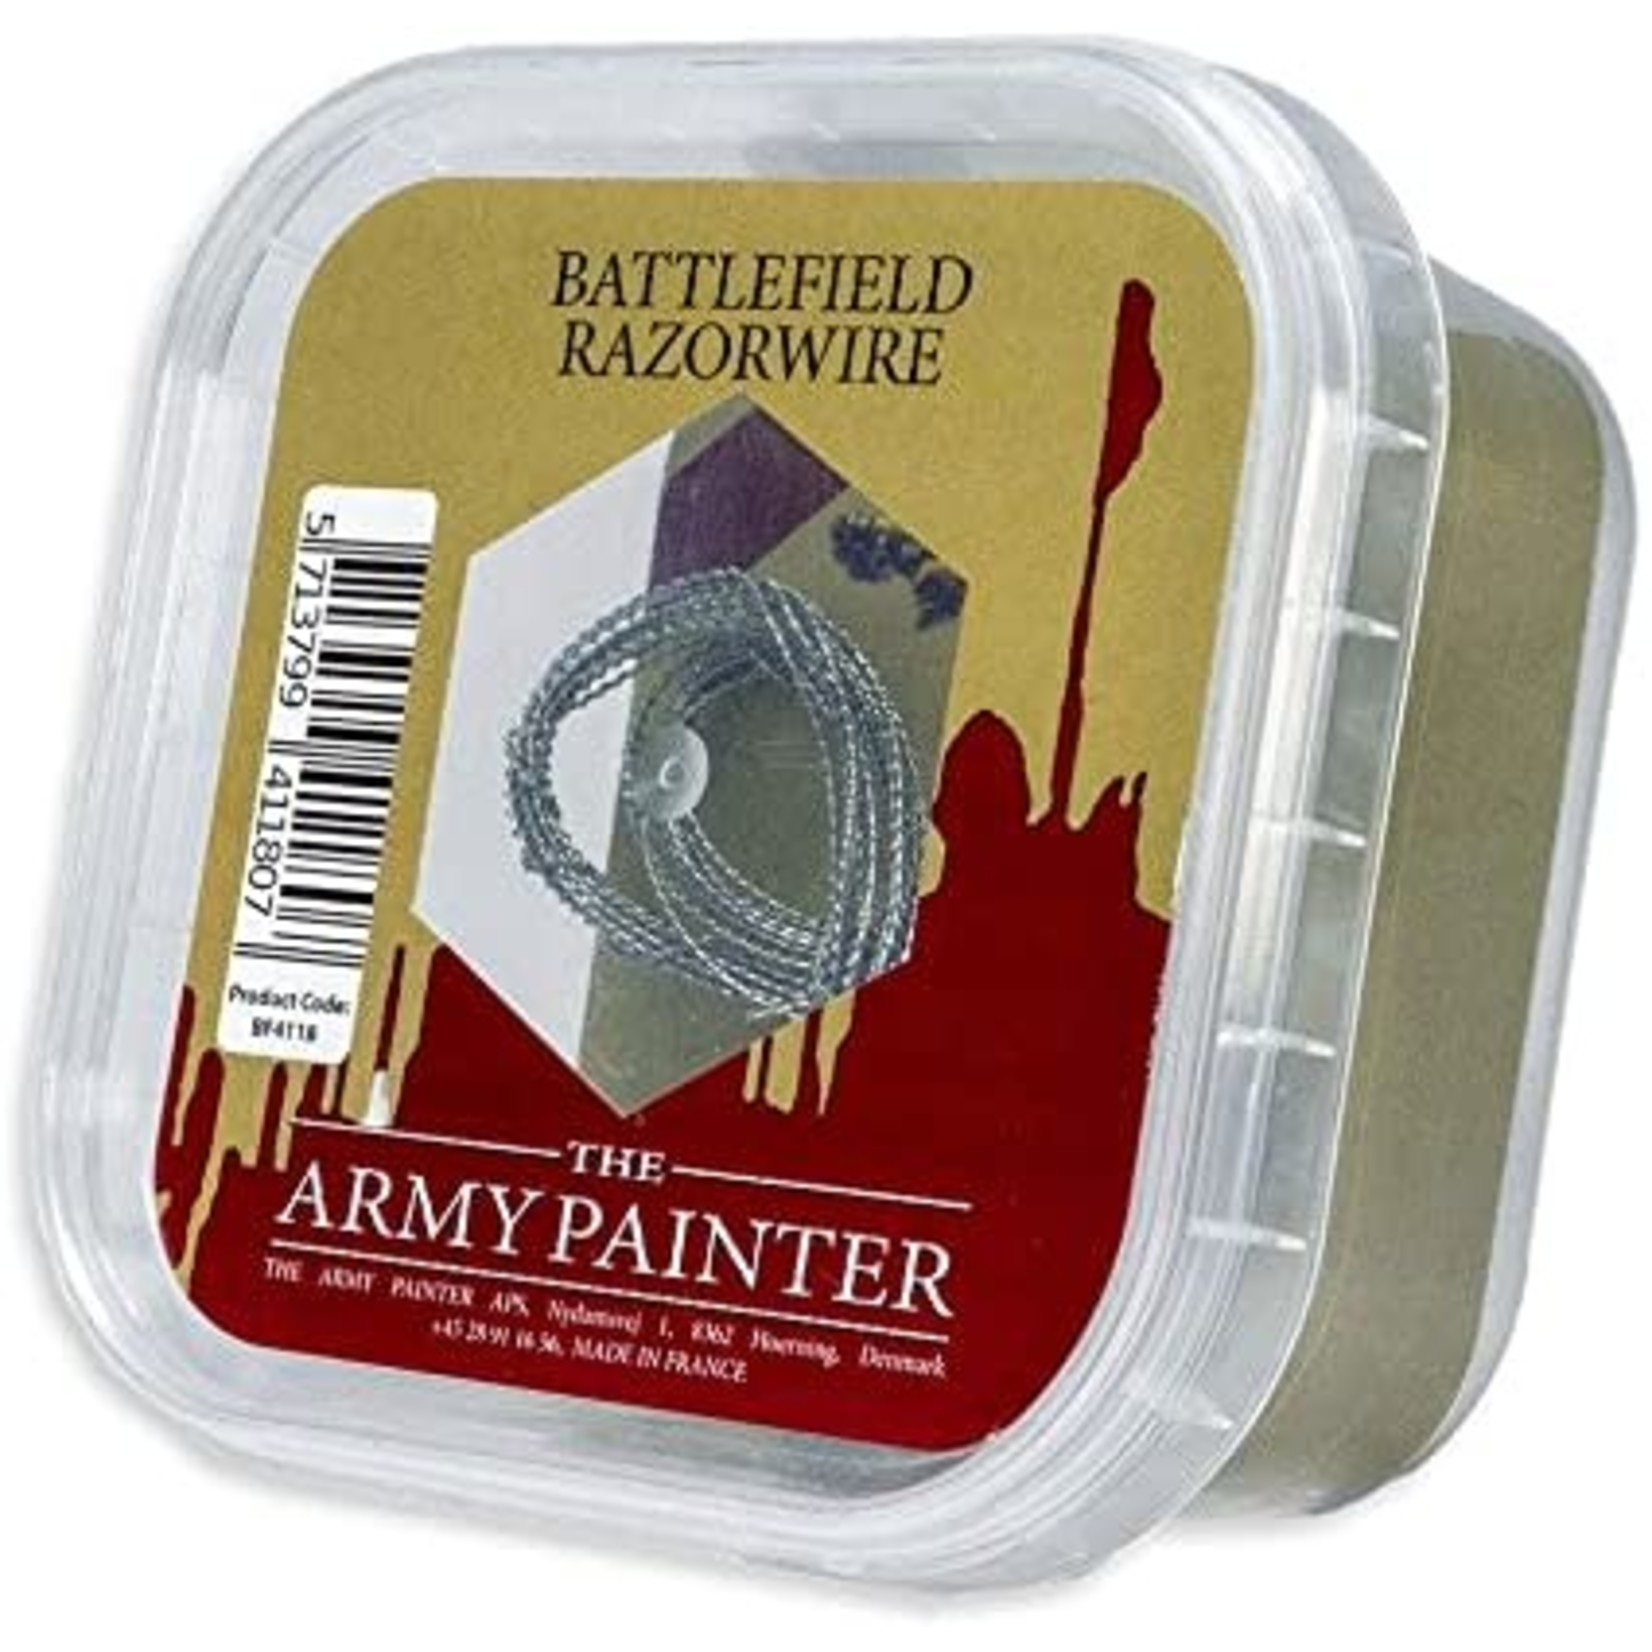 THE ARMY PAINTER BATTLEFIELDS RAZORWIRE